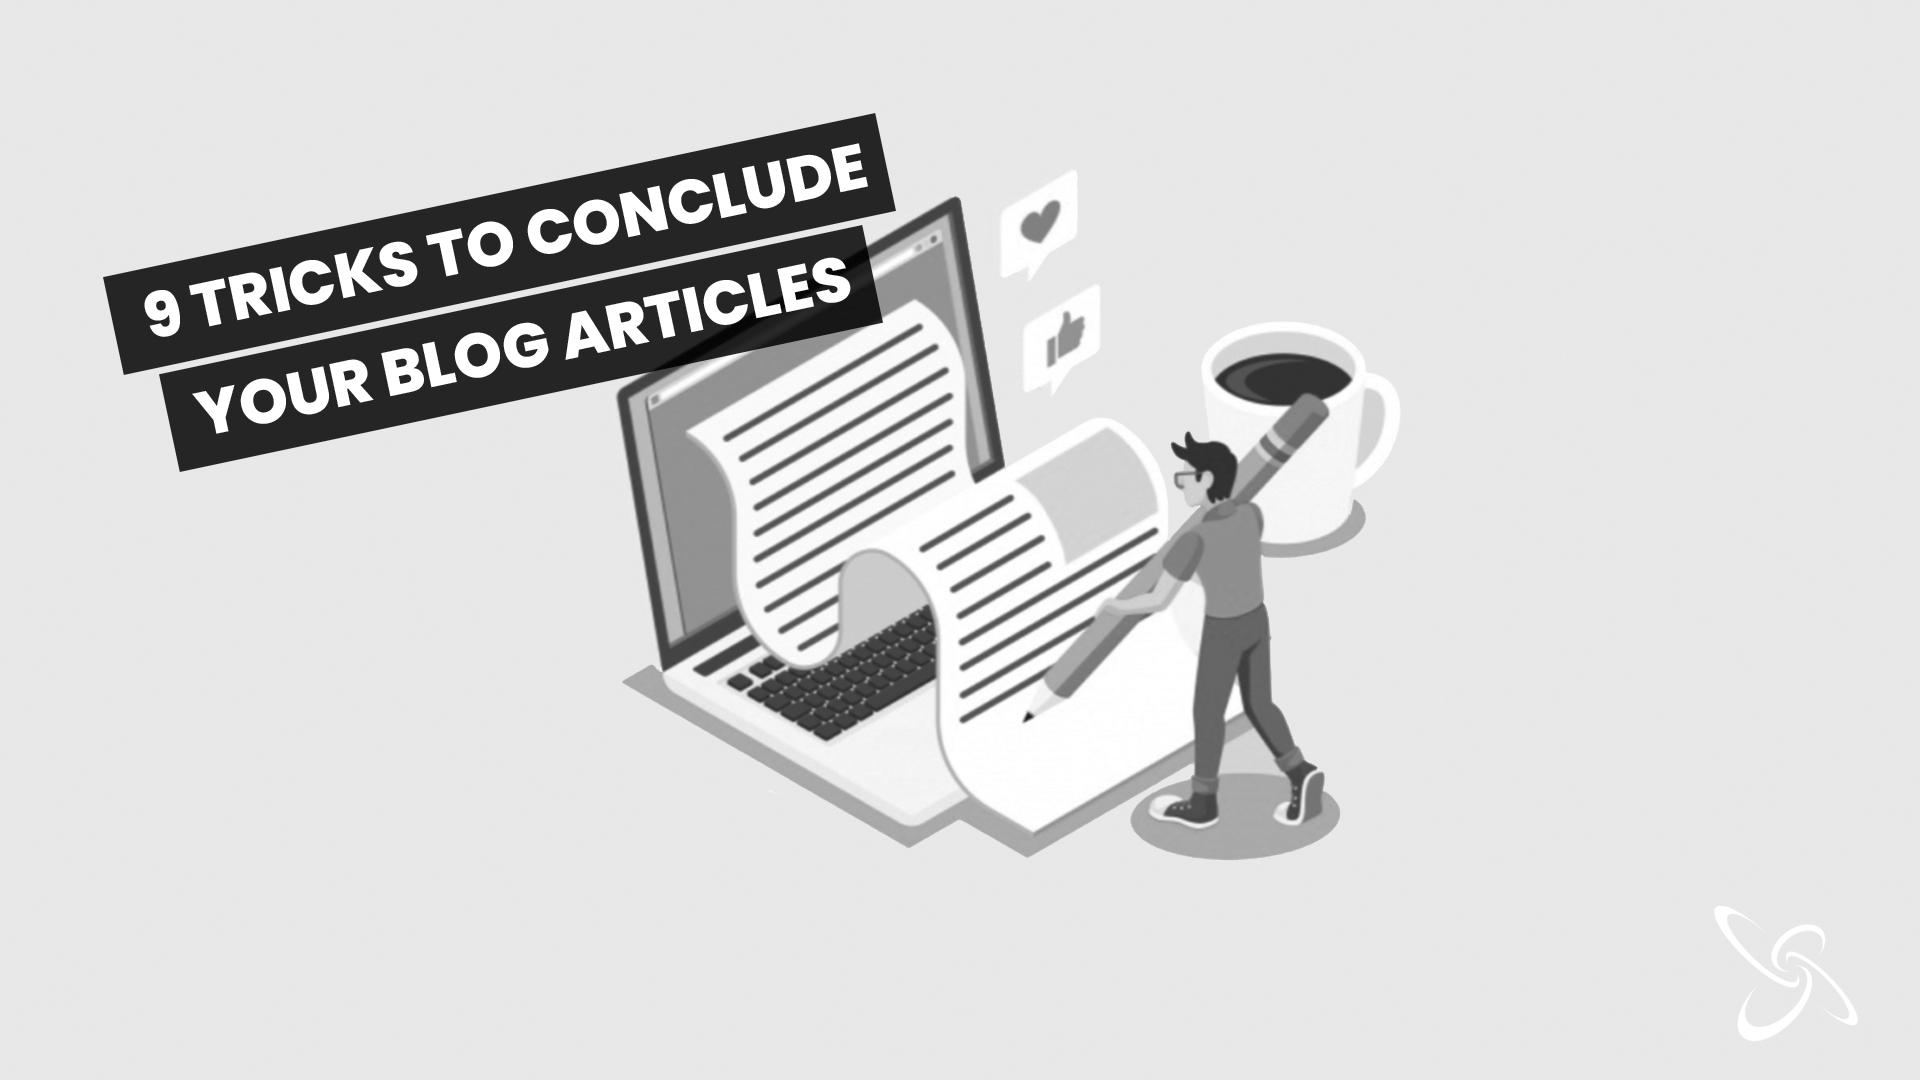 9 tricks to conclude your blog articles